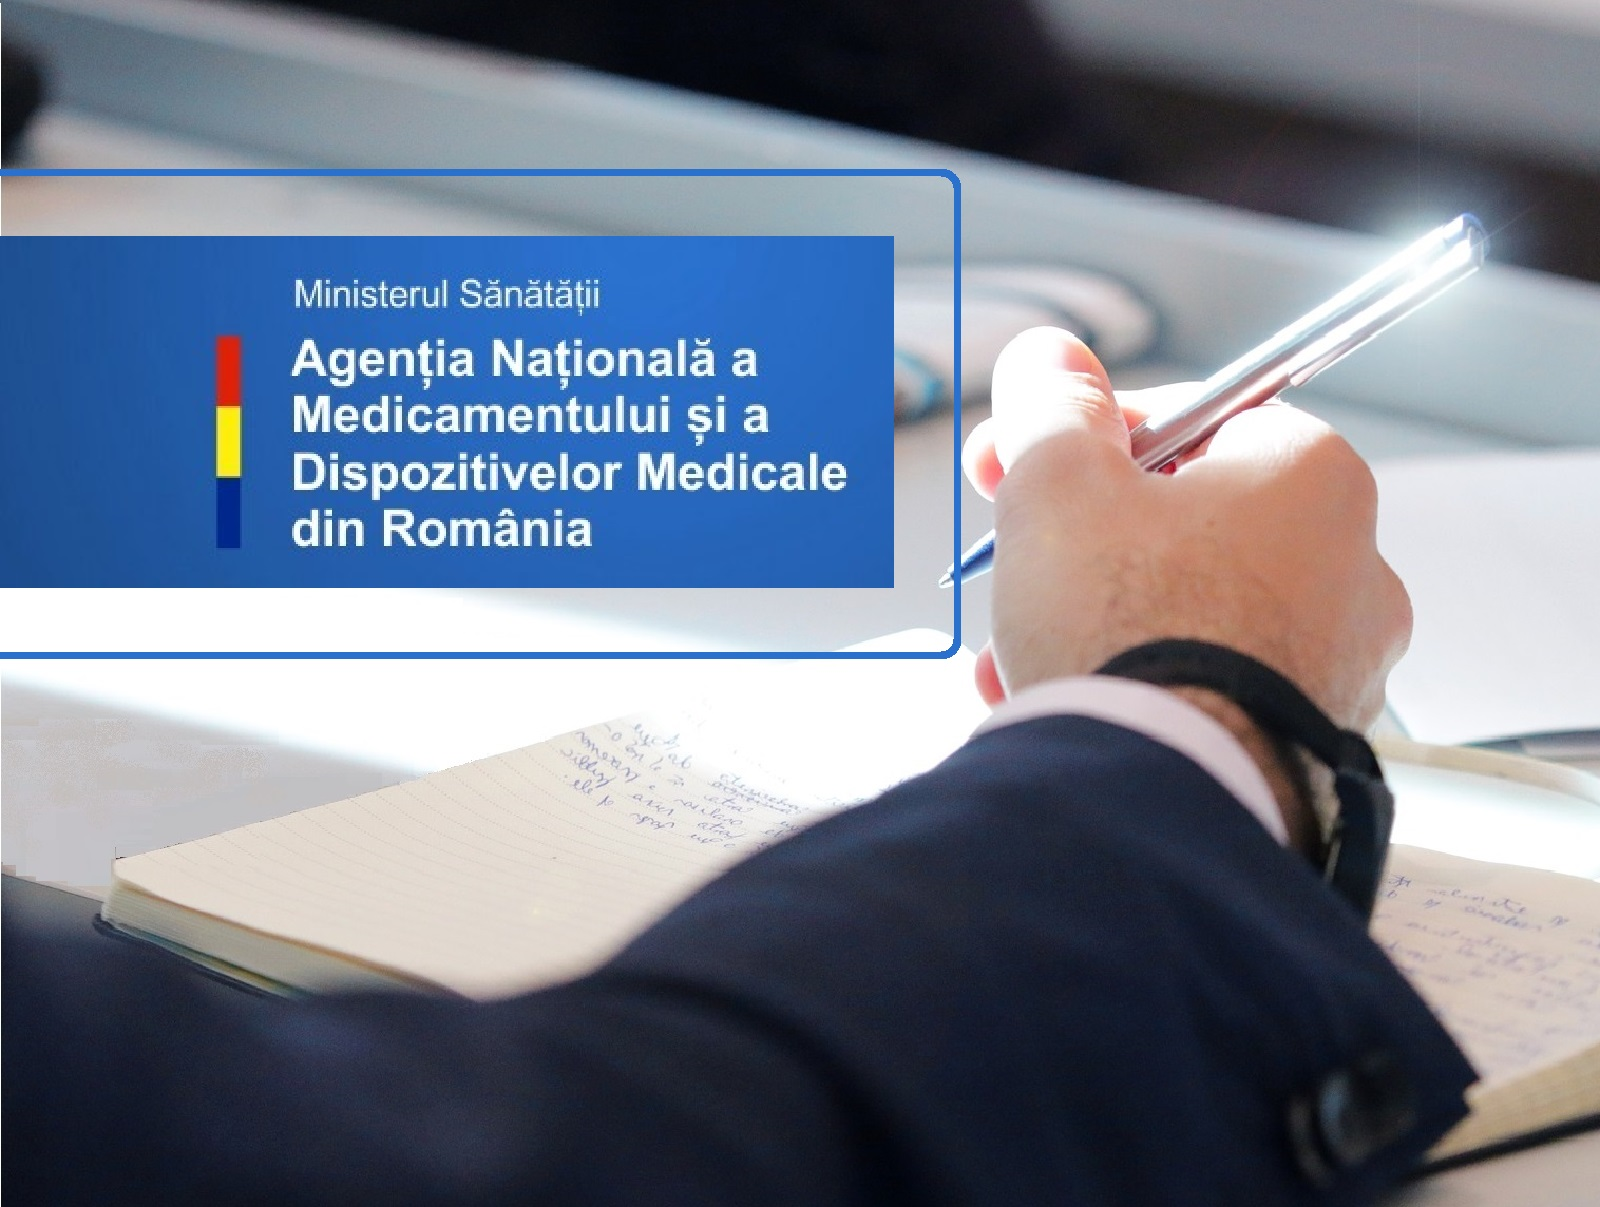 The leading positions in the Romanian National Drug Agency (ANMDMR) blocked by the Ministry of Health